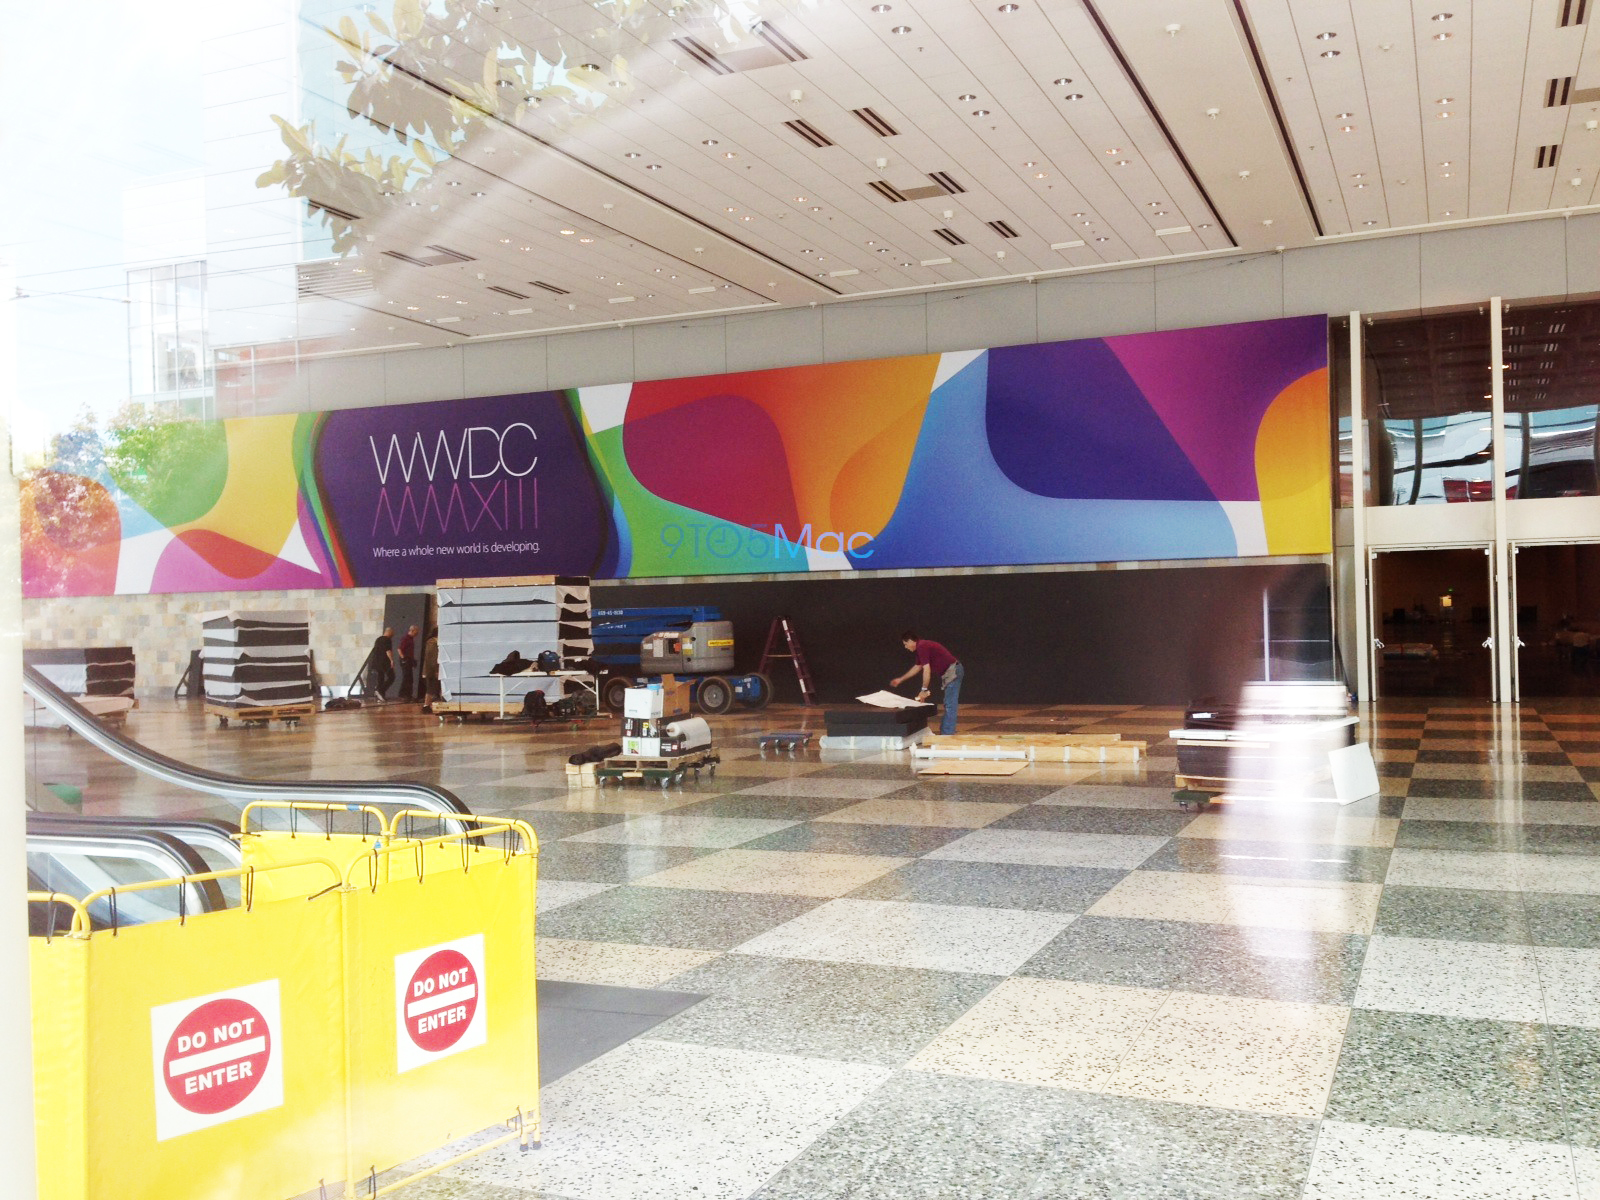 WWDC 2013 - Moscone West w San Francisco